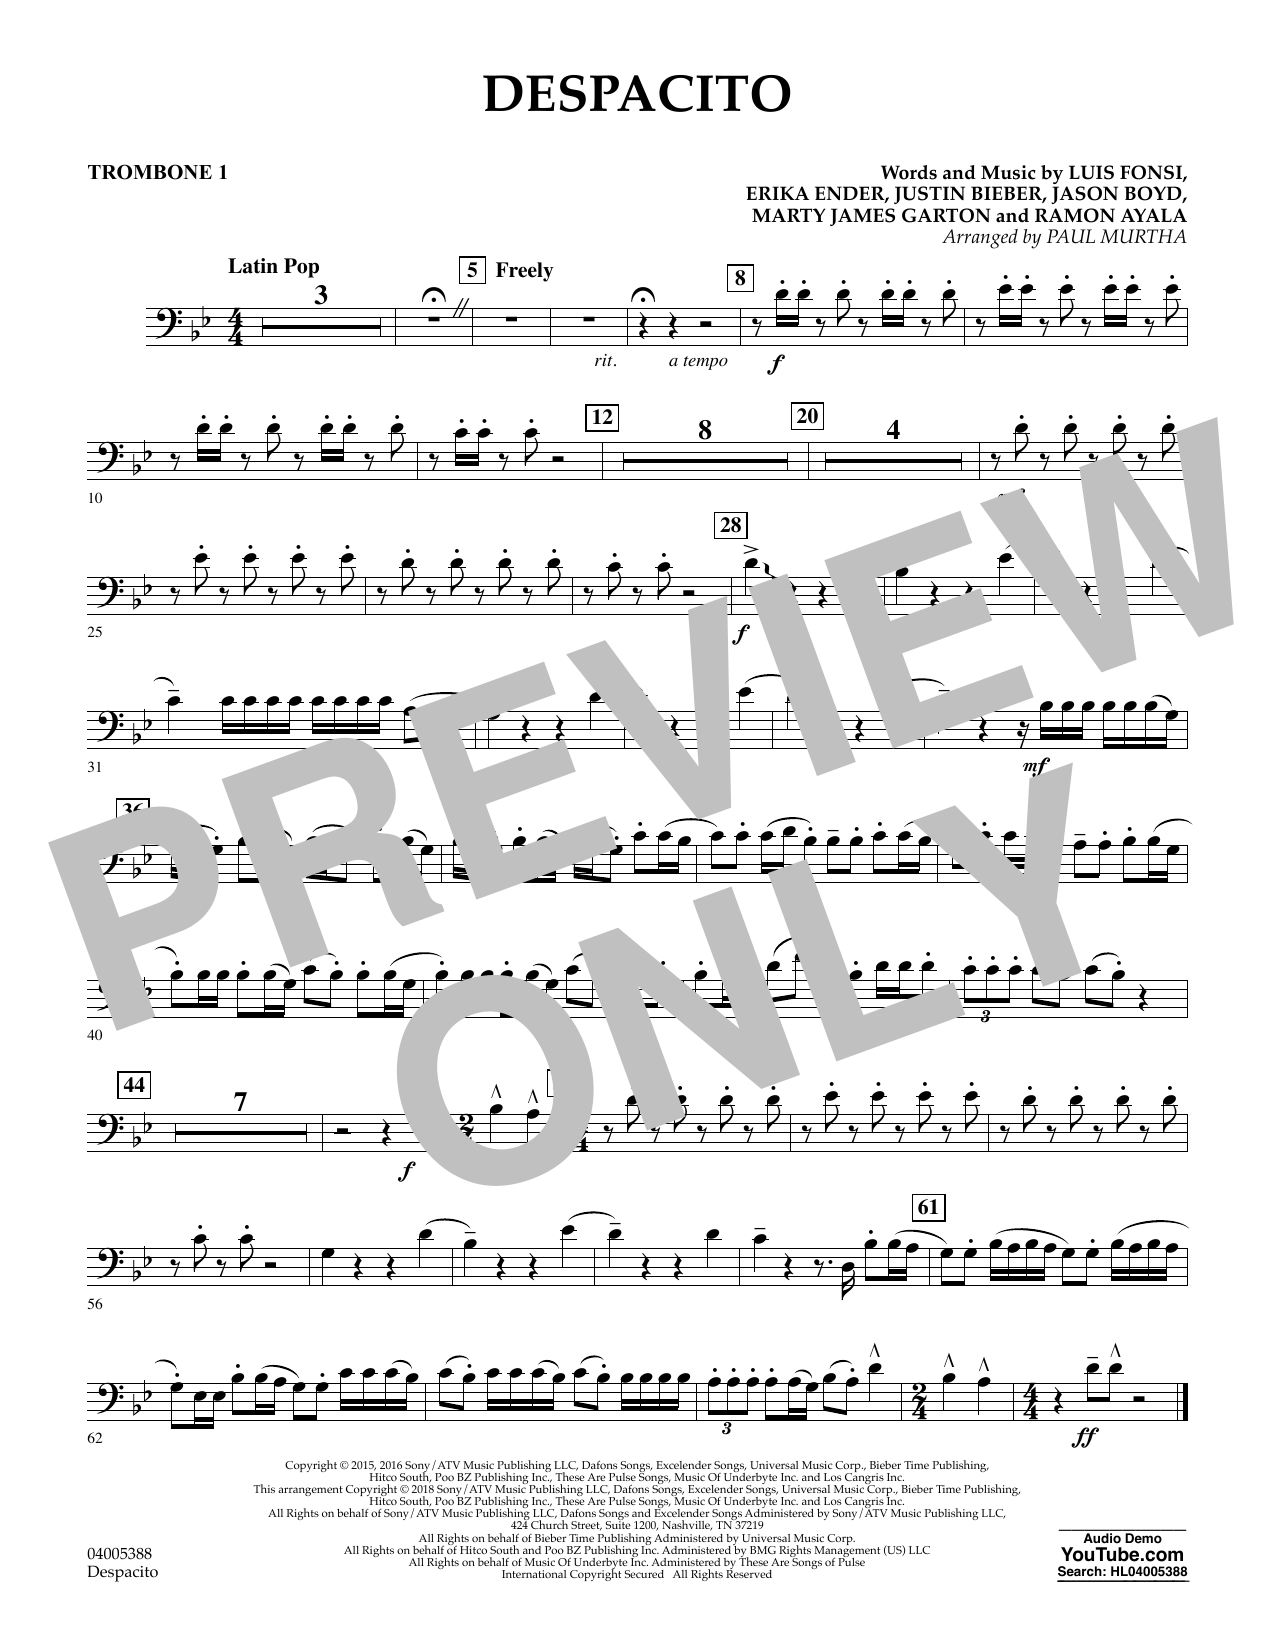 Paul Murtha Despacito - Trombone 1 sheet music notes and chords. Download Printable PDF.